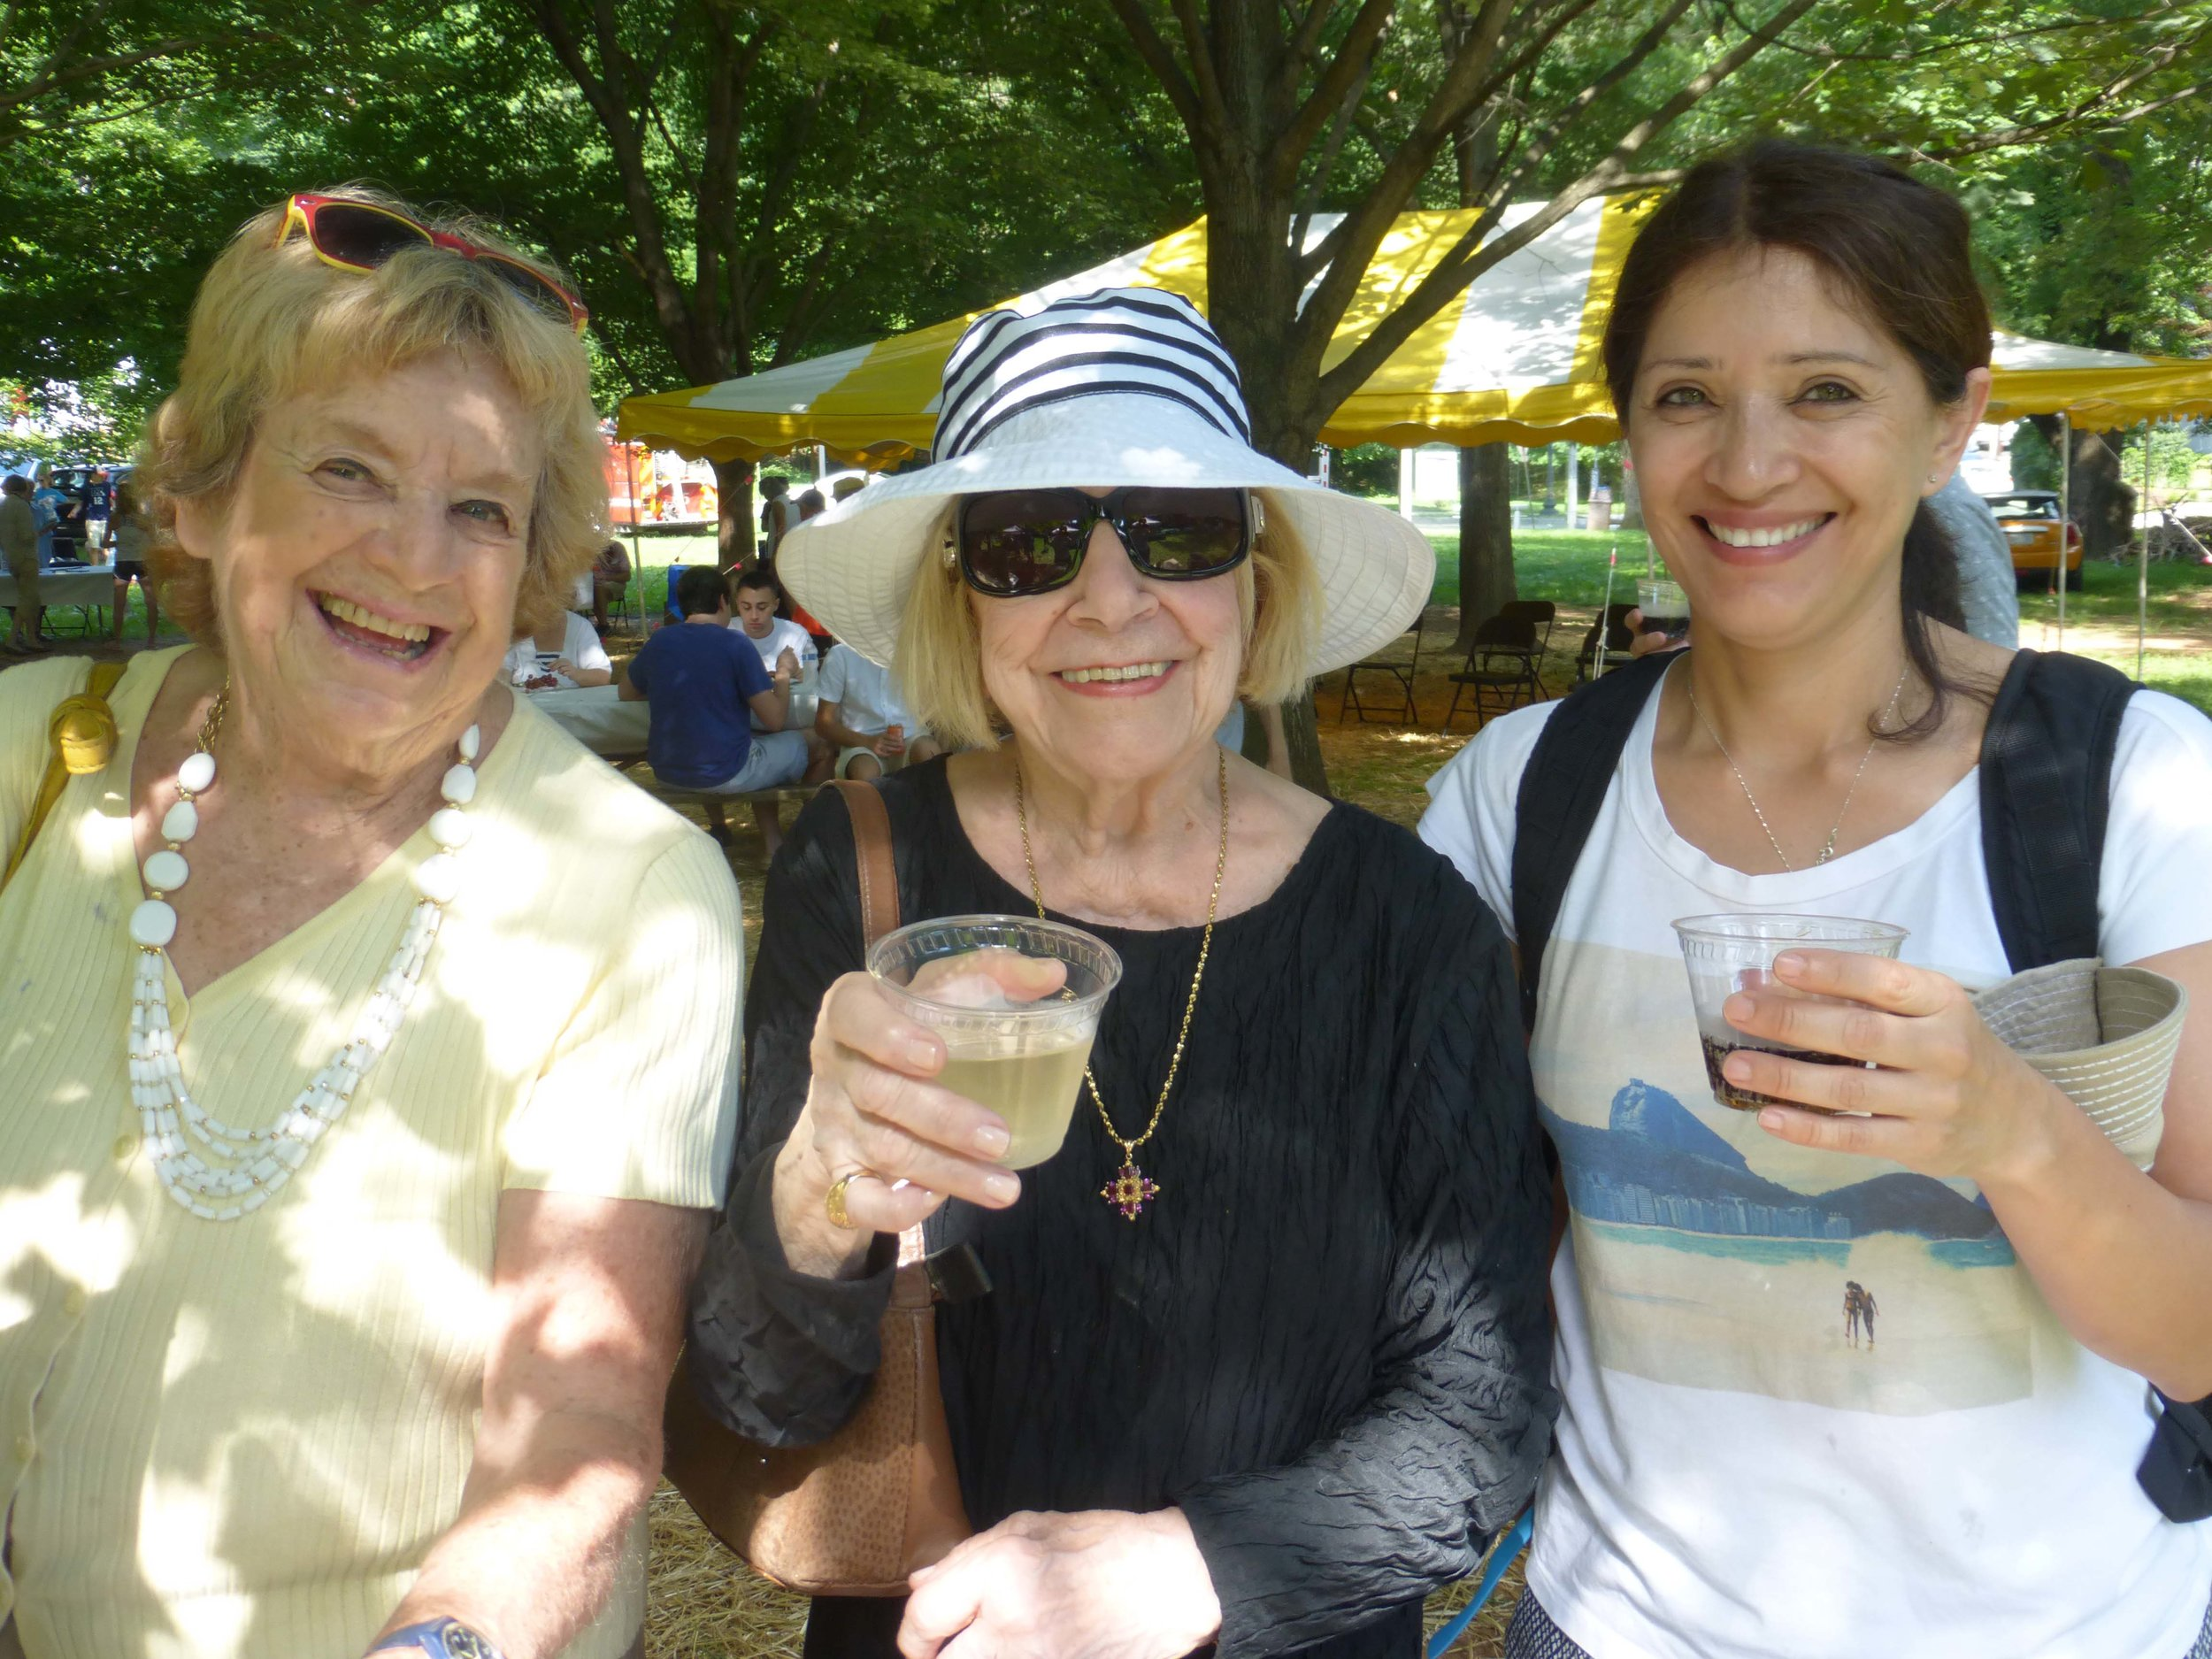 Long-time residents mingled with newer arrivals.